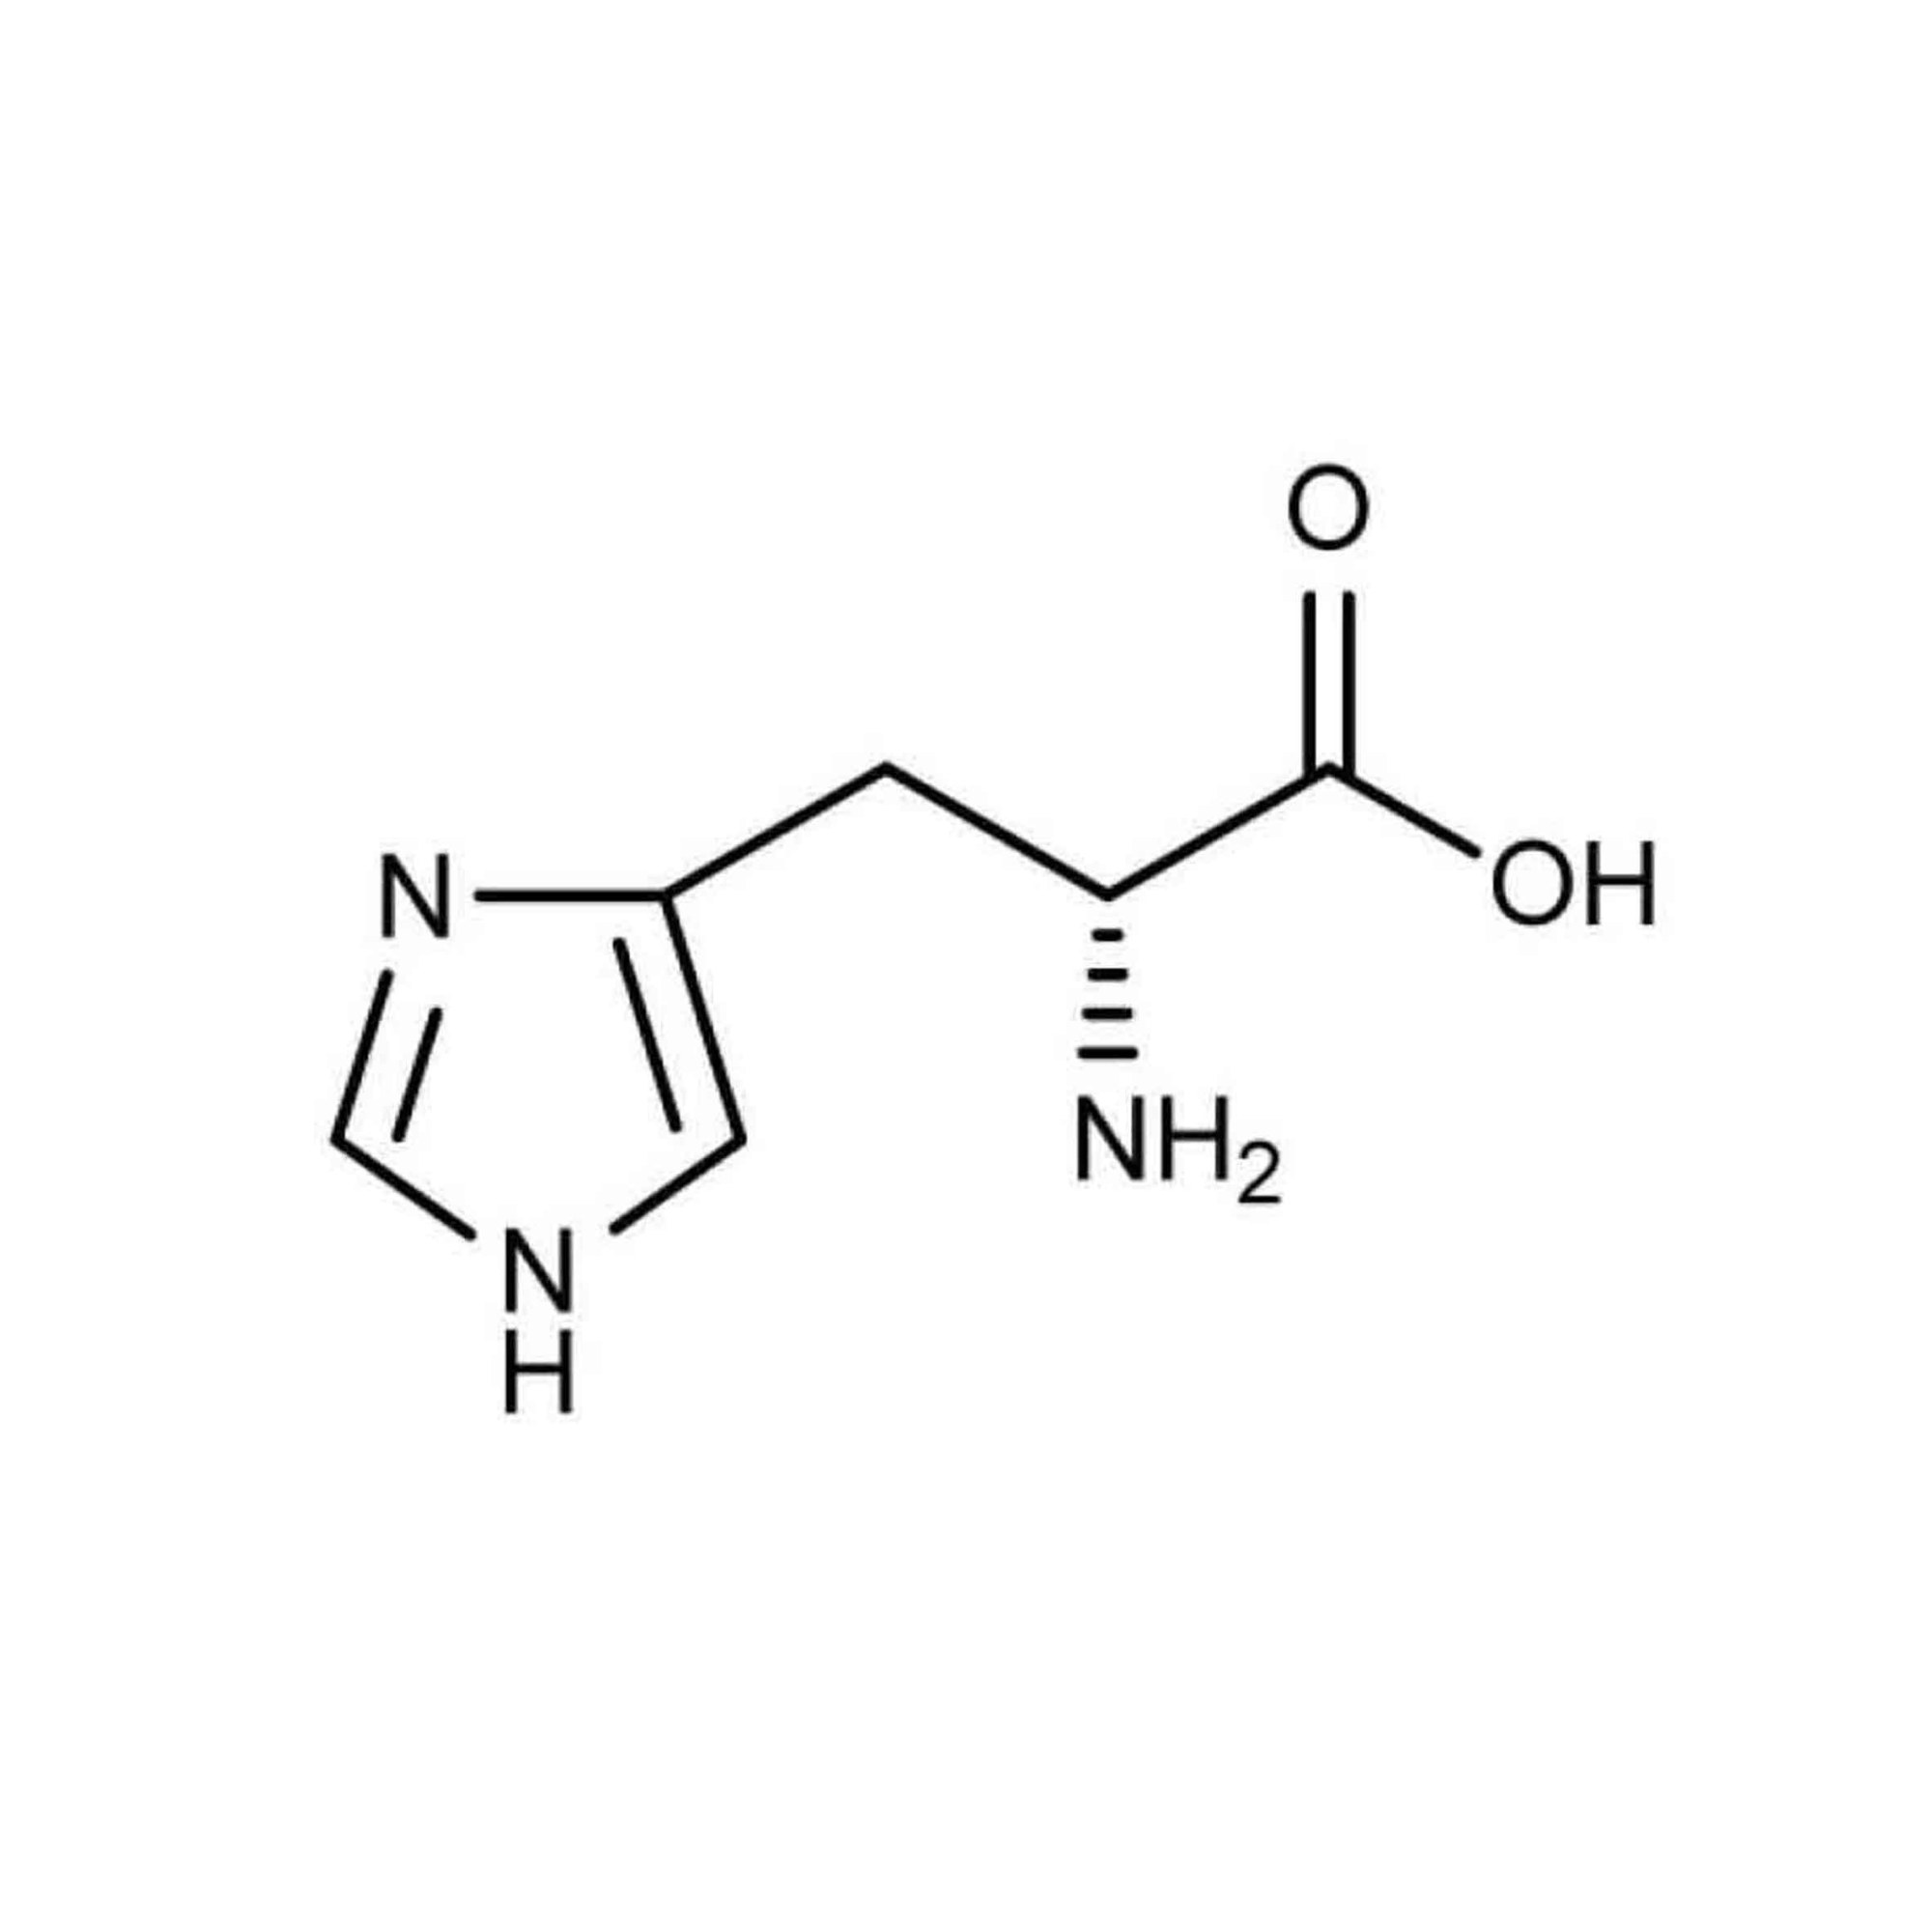 hight resolution of histidine contains an amino group a carboxylic acid group and an imidazole side chain classifying it as a positively charged amino acid at physiological